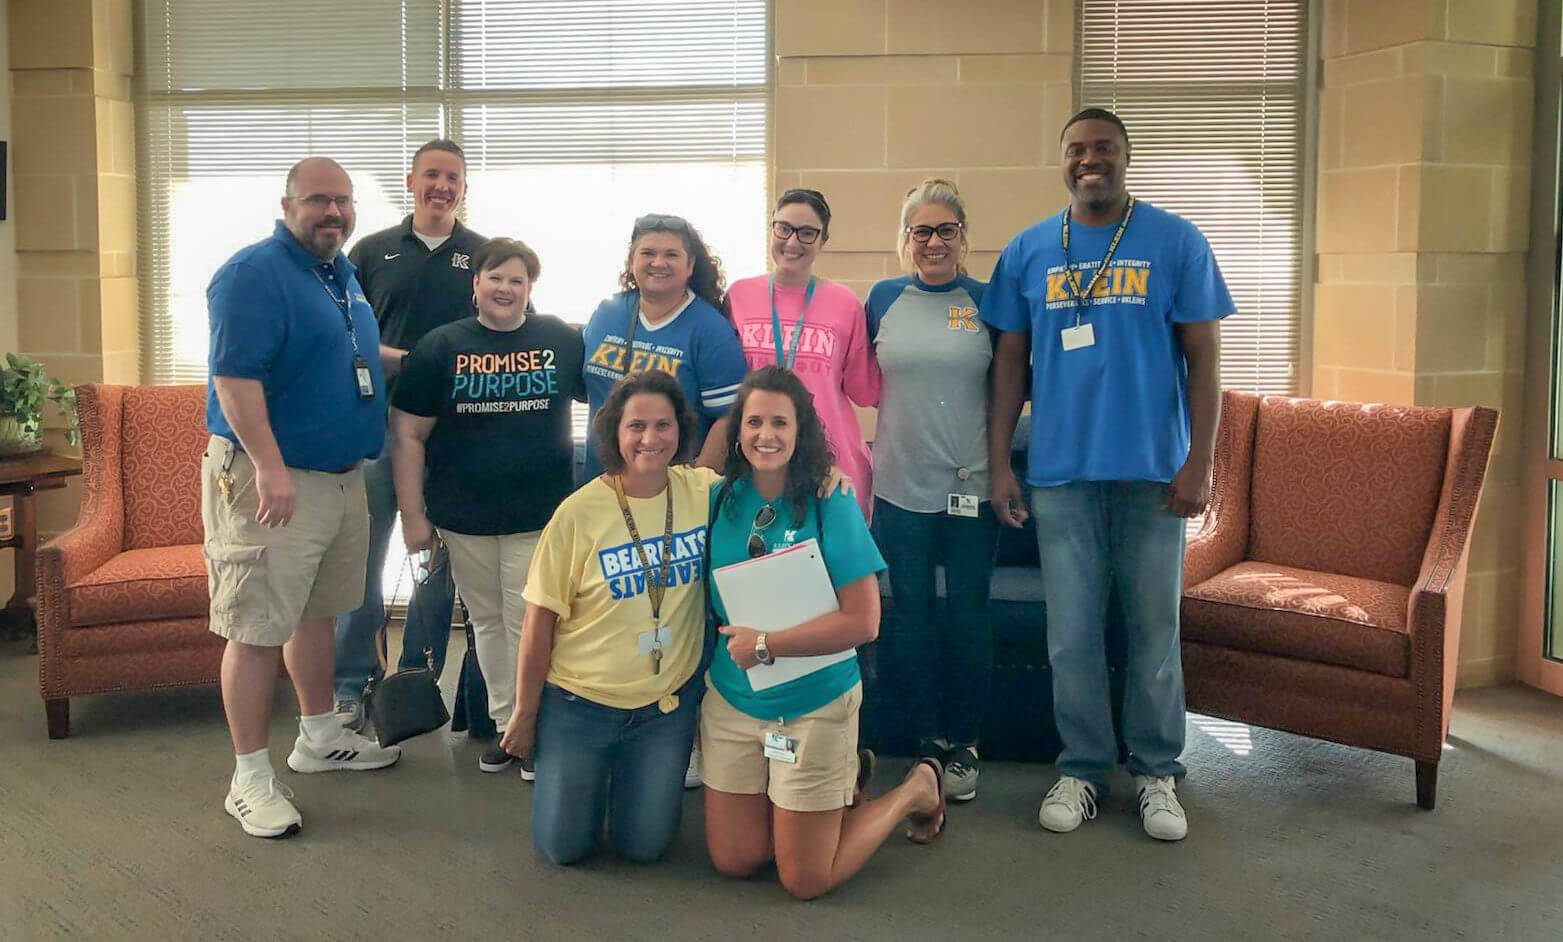 Klein ISD Participates in Project Reach Out Walk